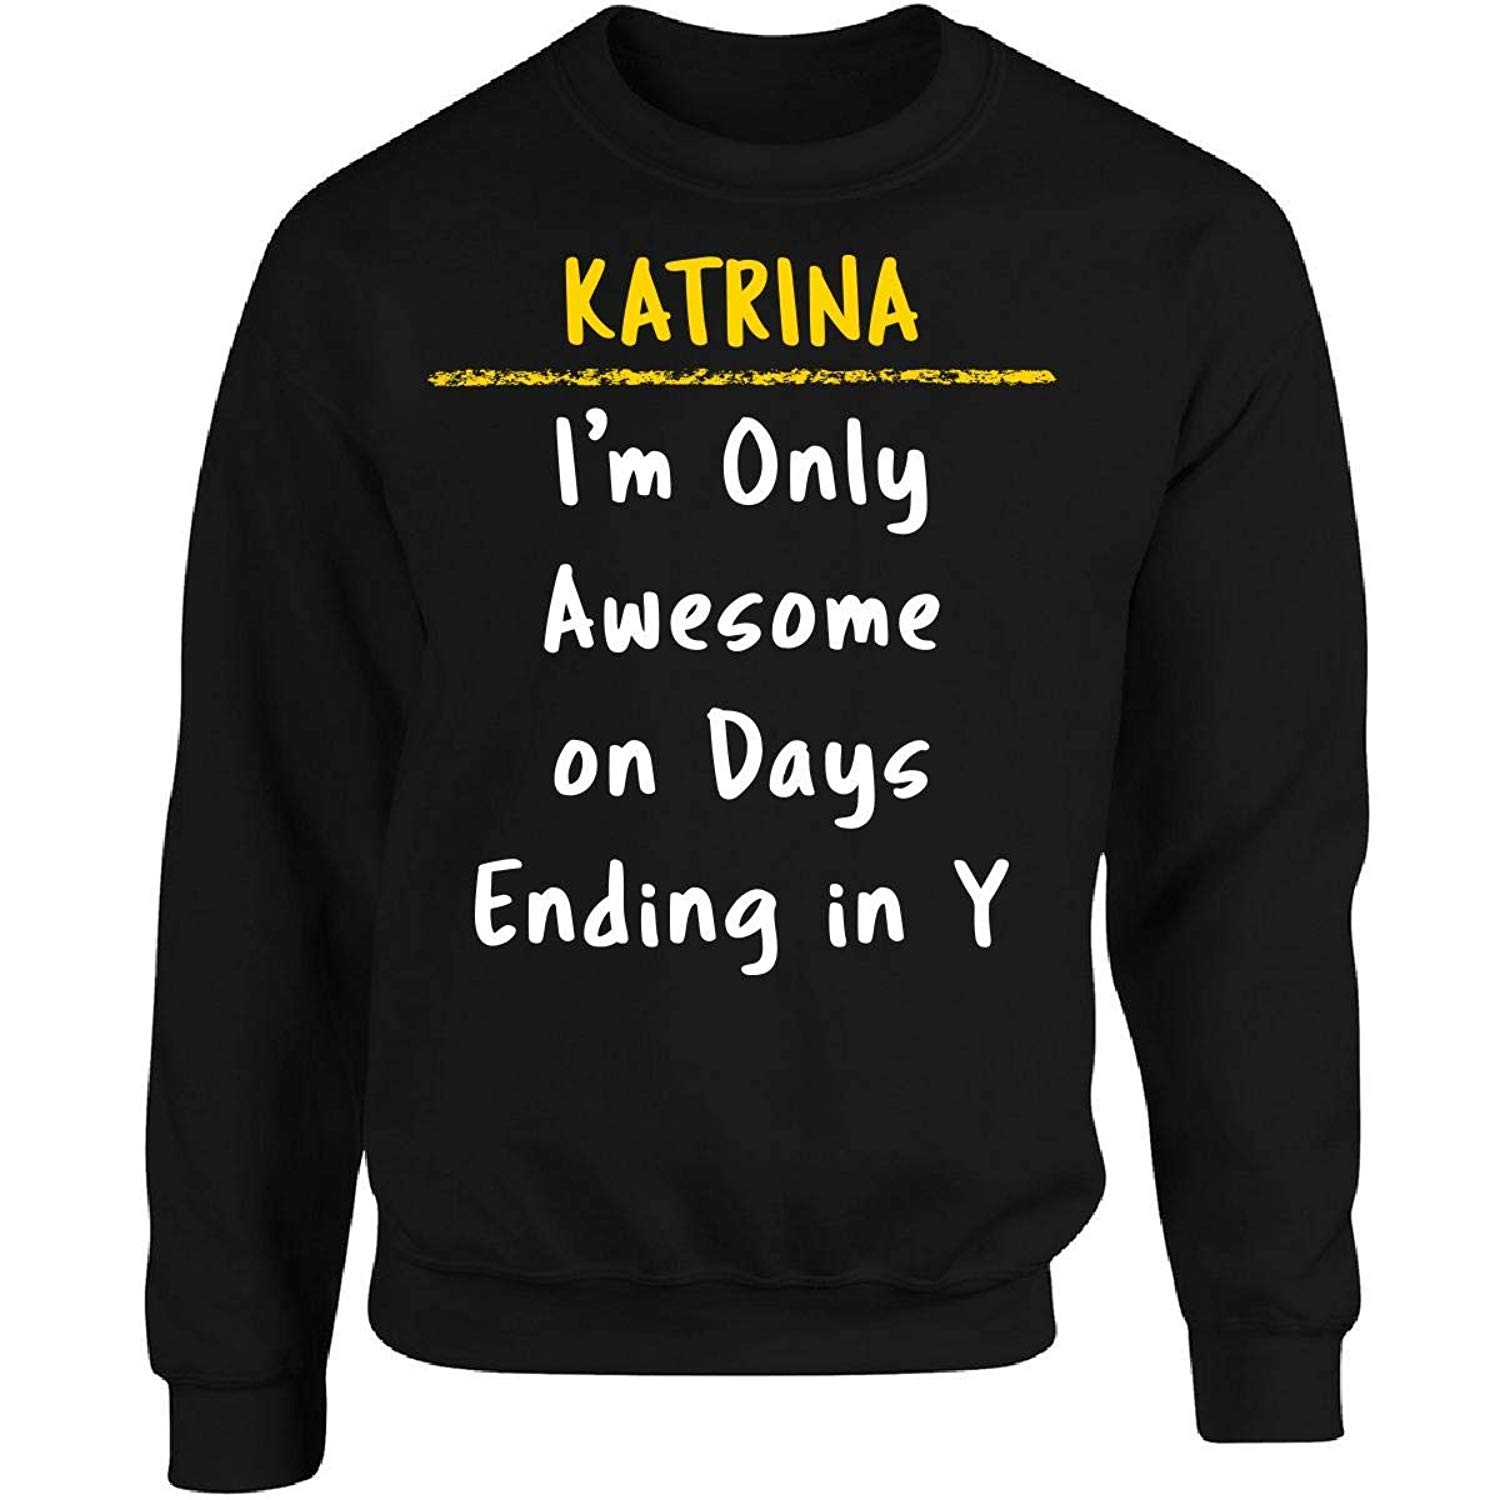 Sierra Goods Katrina Awesome Sarcastic Funny Saying Name Office Gift - Adult Sweatshirt